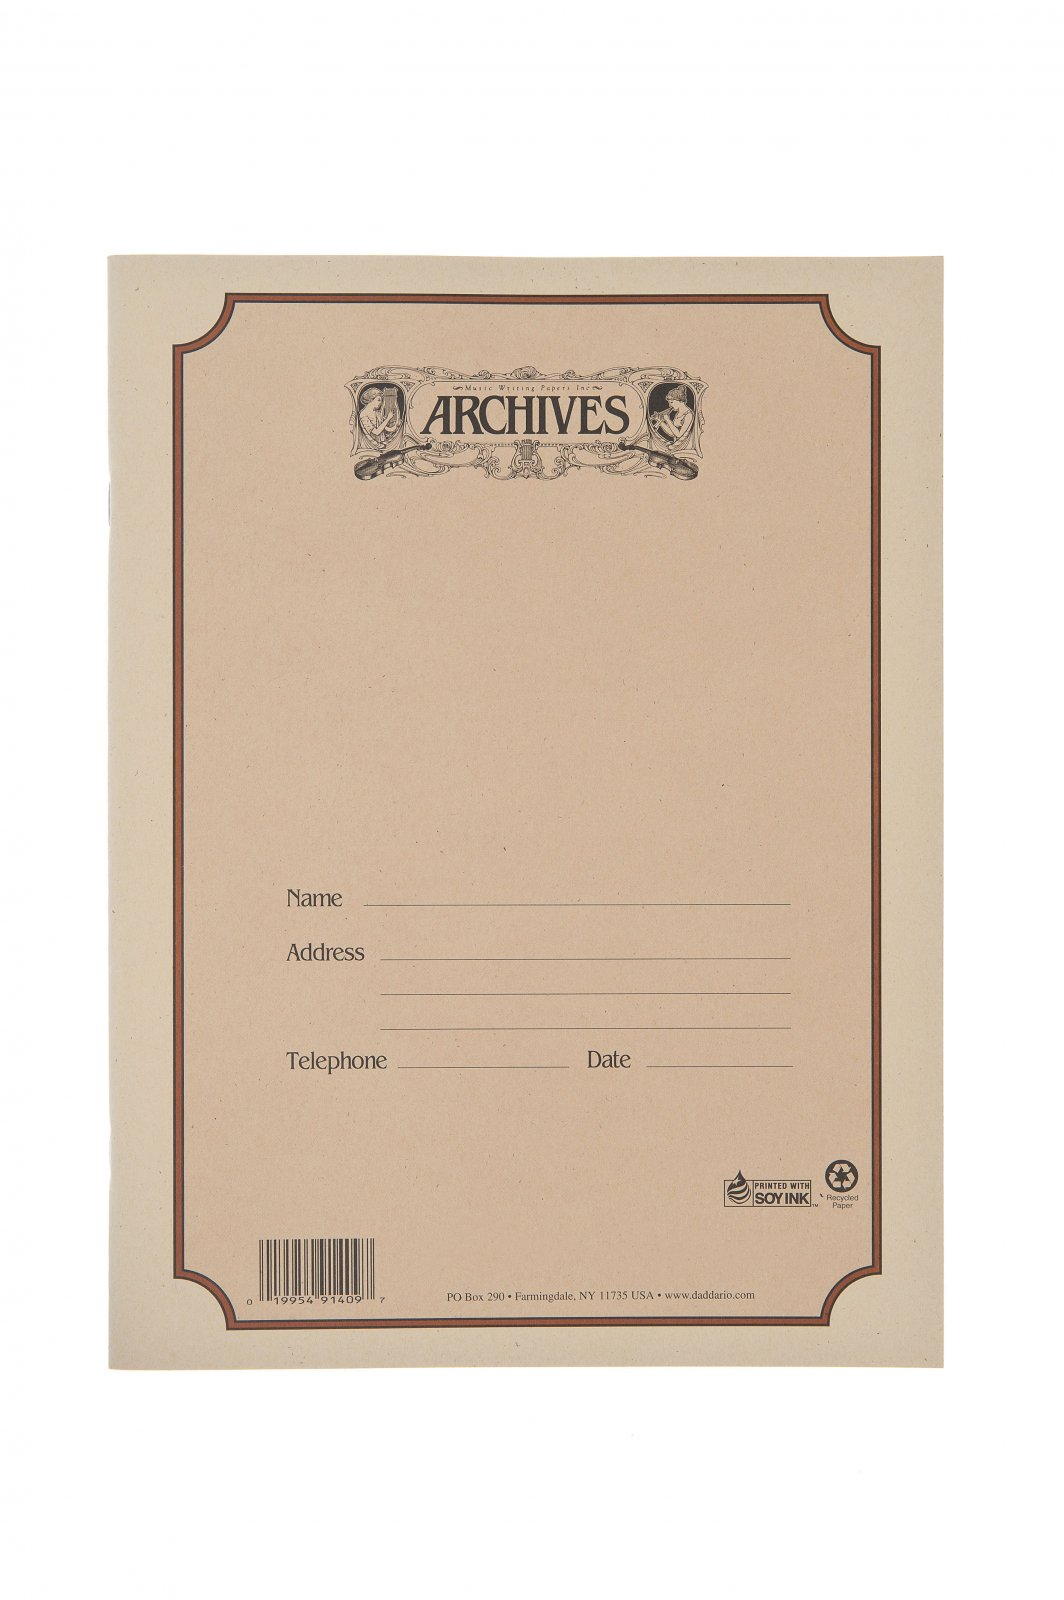 Archives Spiral-Bound Manuscript Paper Book 12 Staves 48 Pages